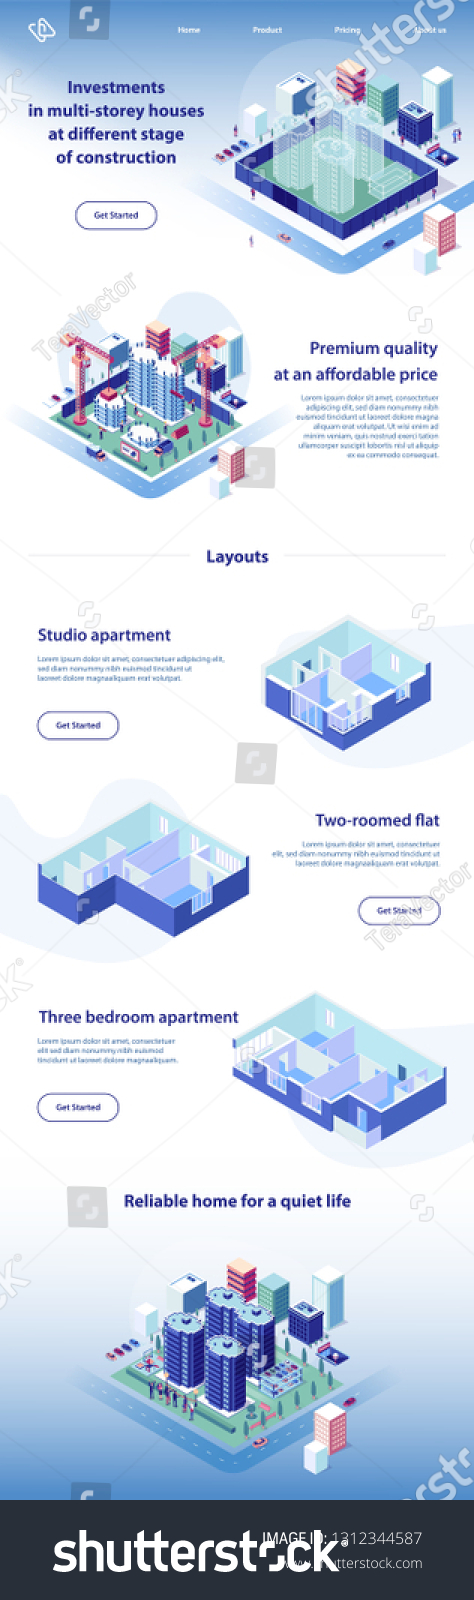 Real estate investment business plan summary. Real Estate Investment House Construction Apartment Stock Vector Royalty Free 1312344587